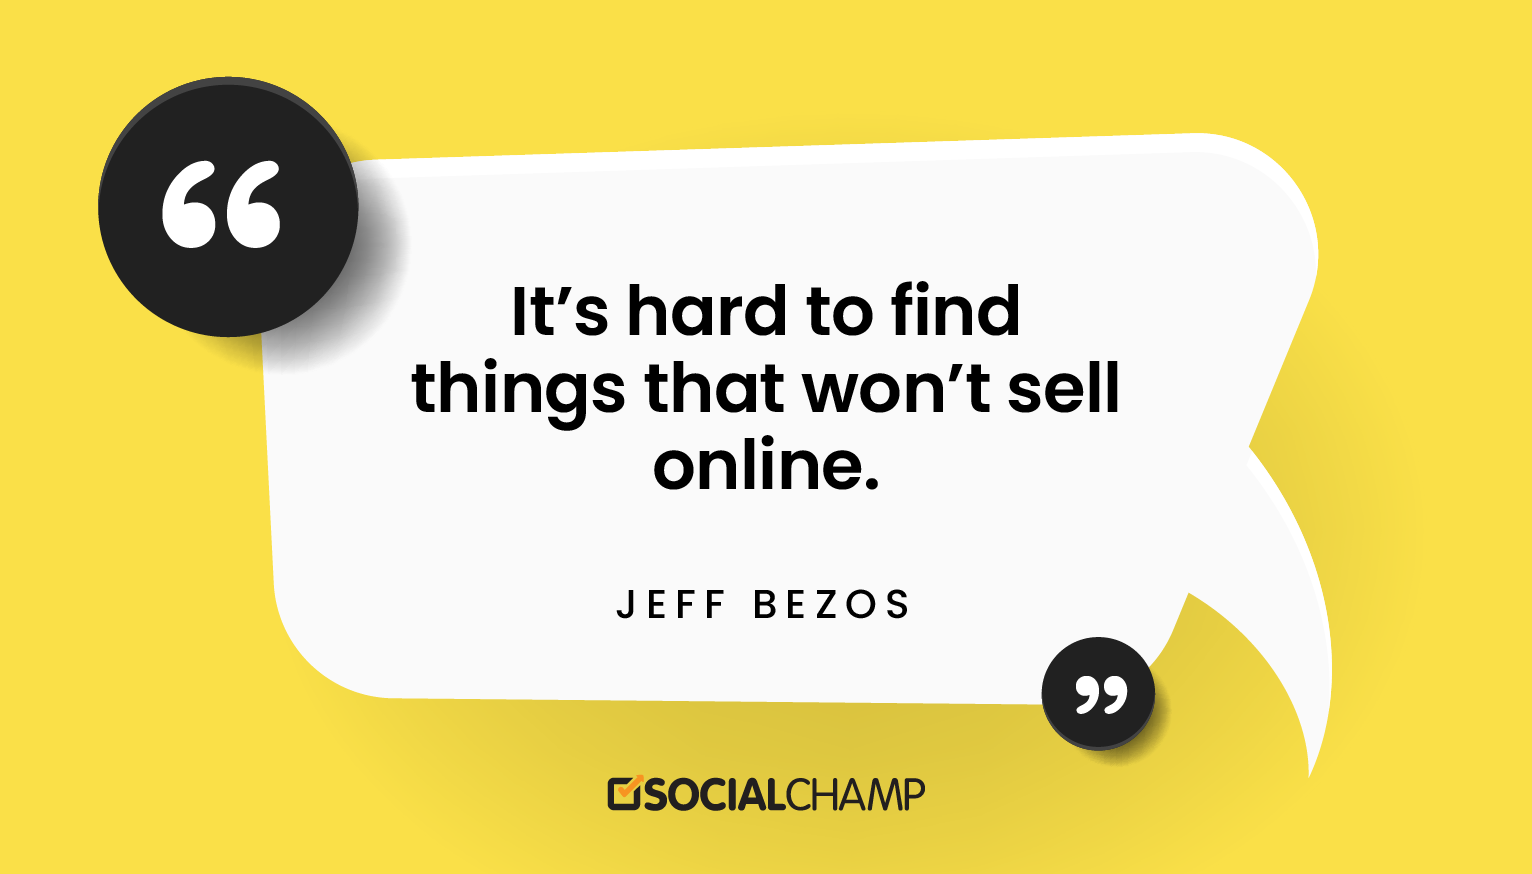 Social Media Marketing Quotes by Celebrities